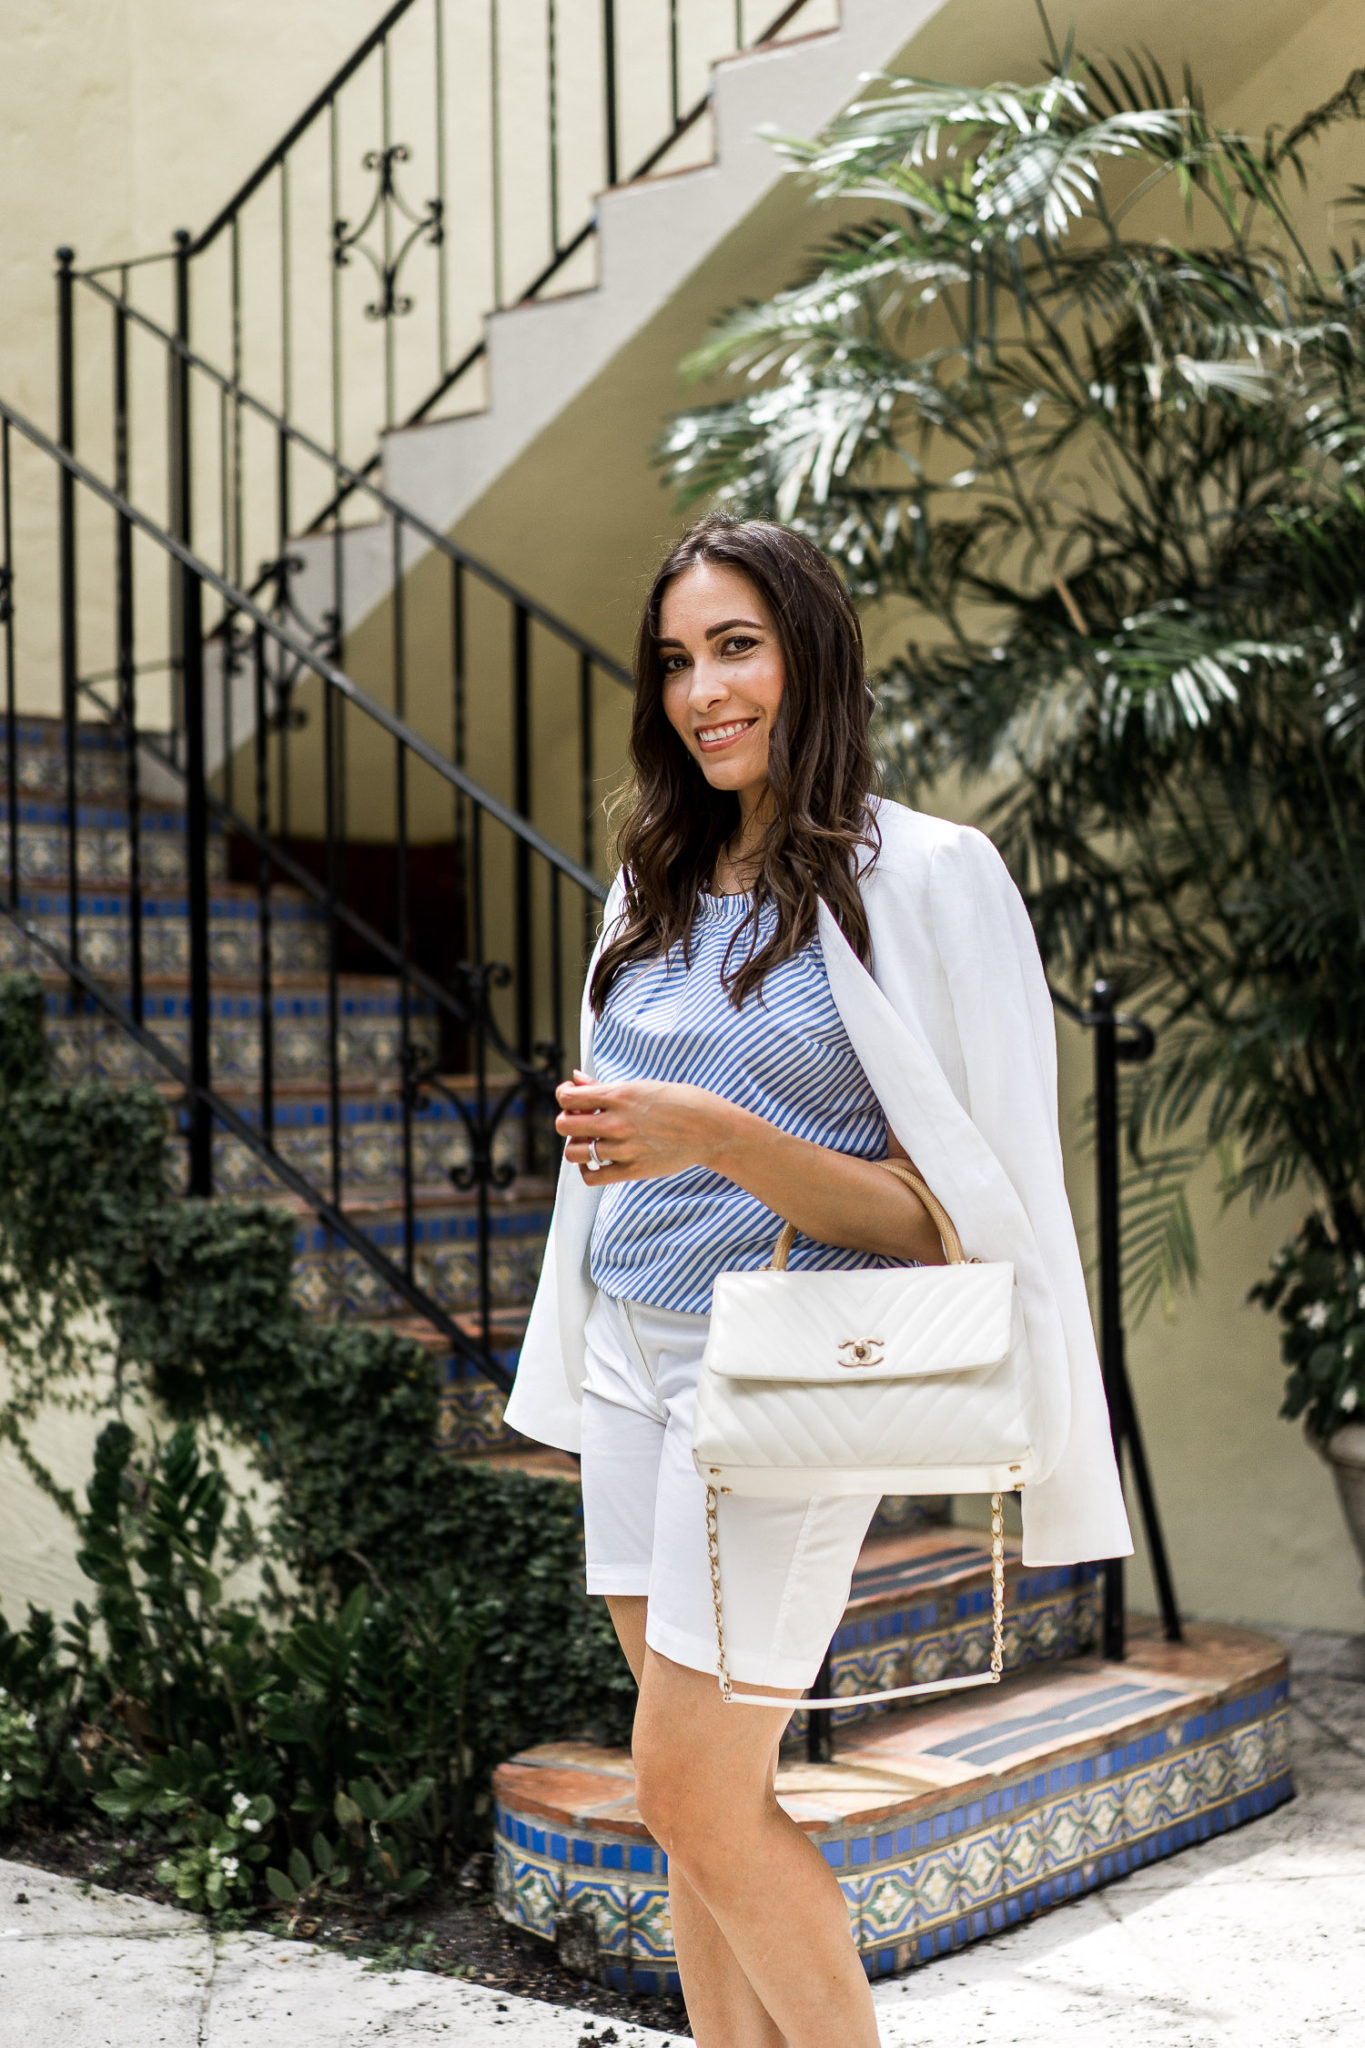 b9e4047b9b2 ... Amanda pairs the Talbots white linen blazer with her striped shell  blouse and girlfriend shorts in ...